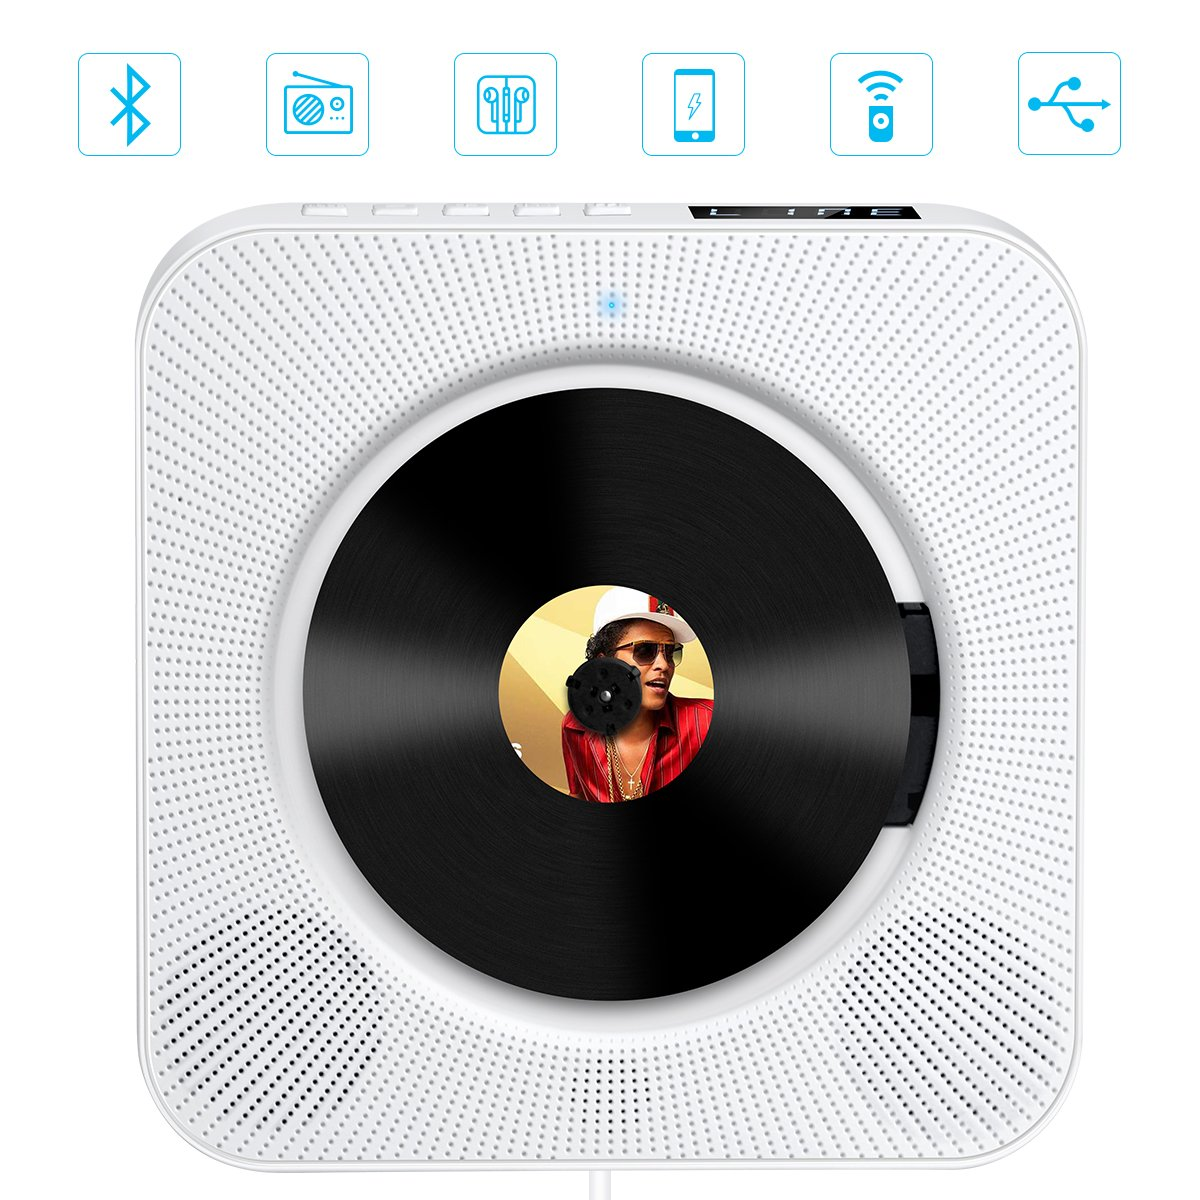 CD Player with Bluetooth, Govee Portable CD Player with Remote Control Wall Mountable CD Player with Screen FM Radio HiFi Speaker CD Music Player Supports USB, SD Card Aux Input Output 6 Playing Modes